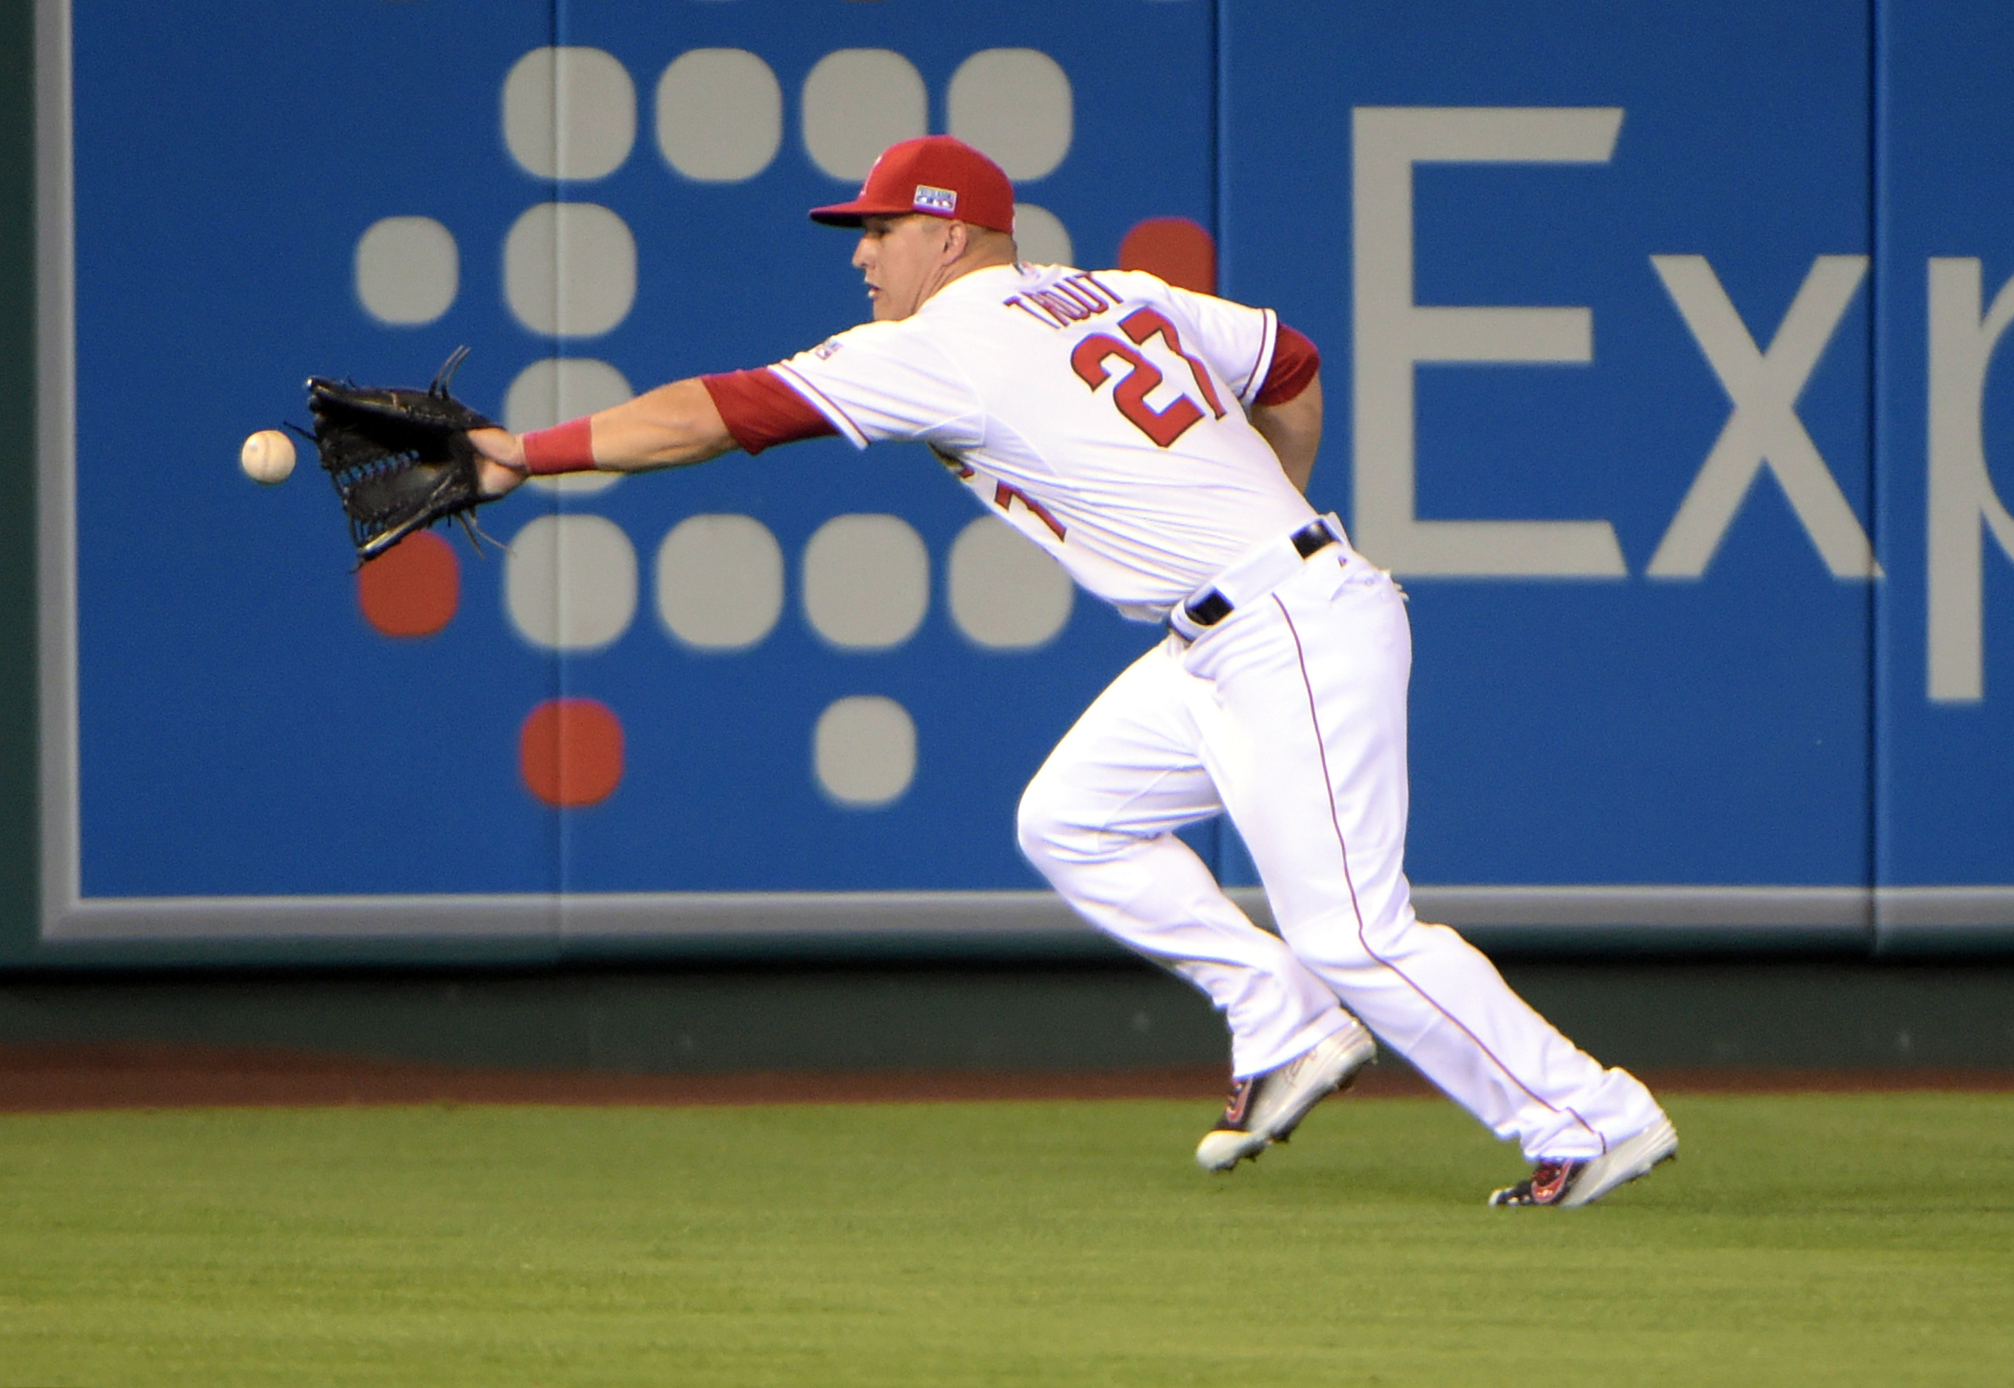 A true five tool player, Mike Trout